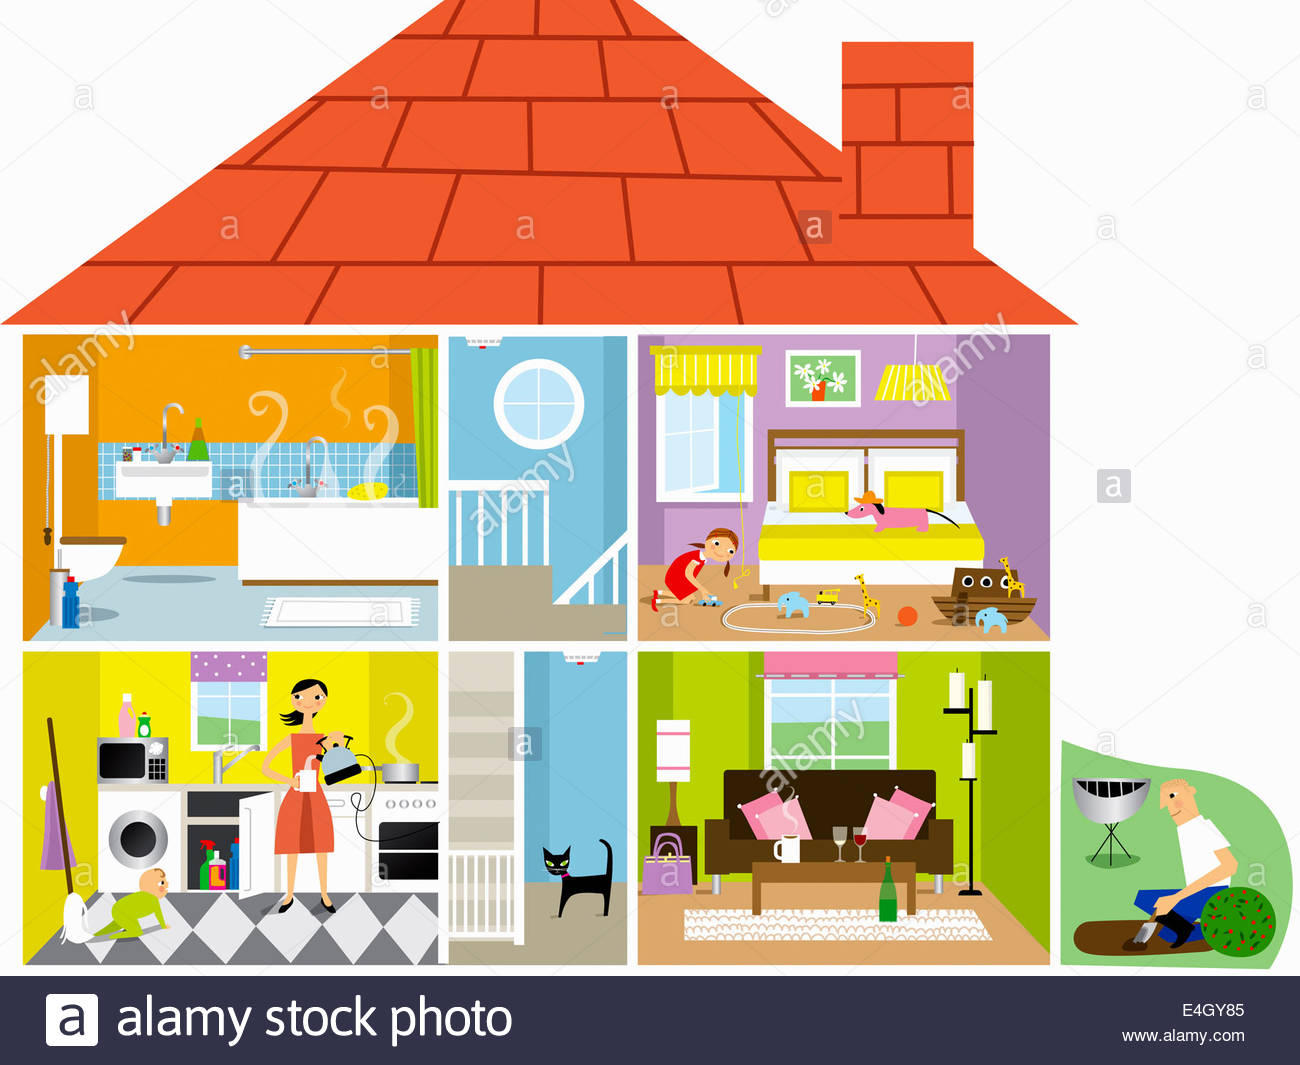 Cross Section Of Family House With Potential Hazards Stock